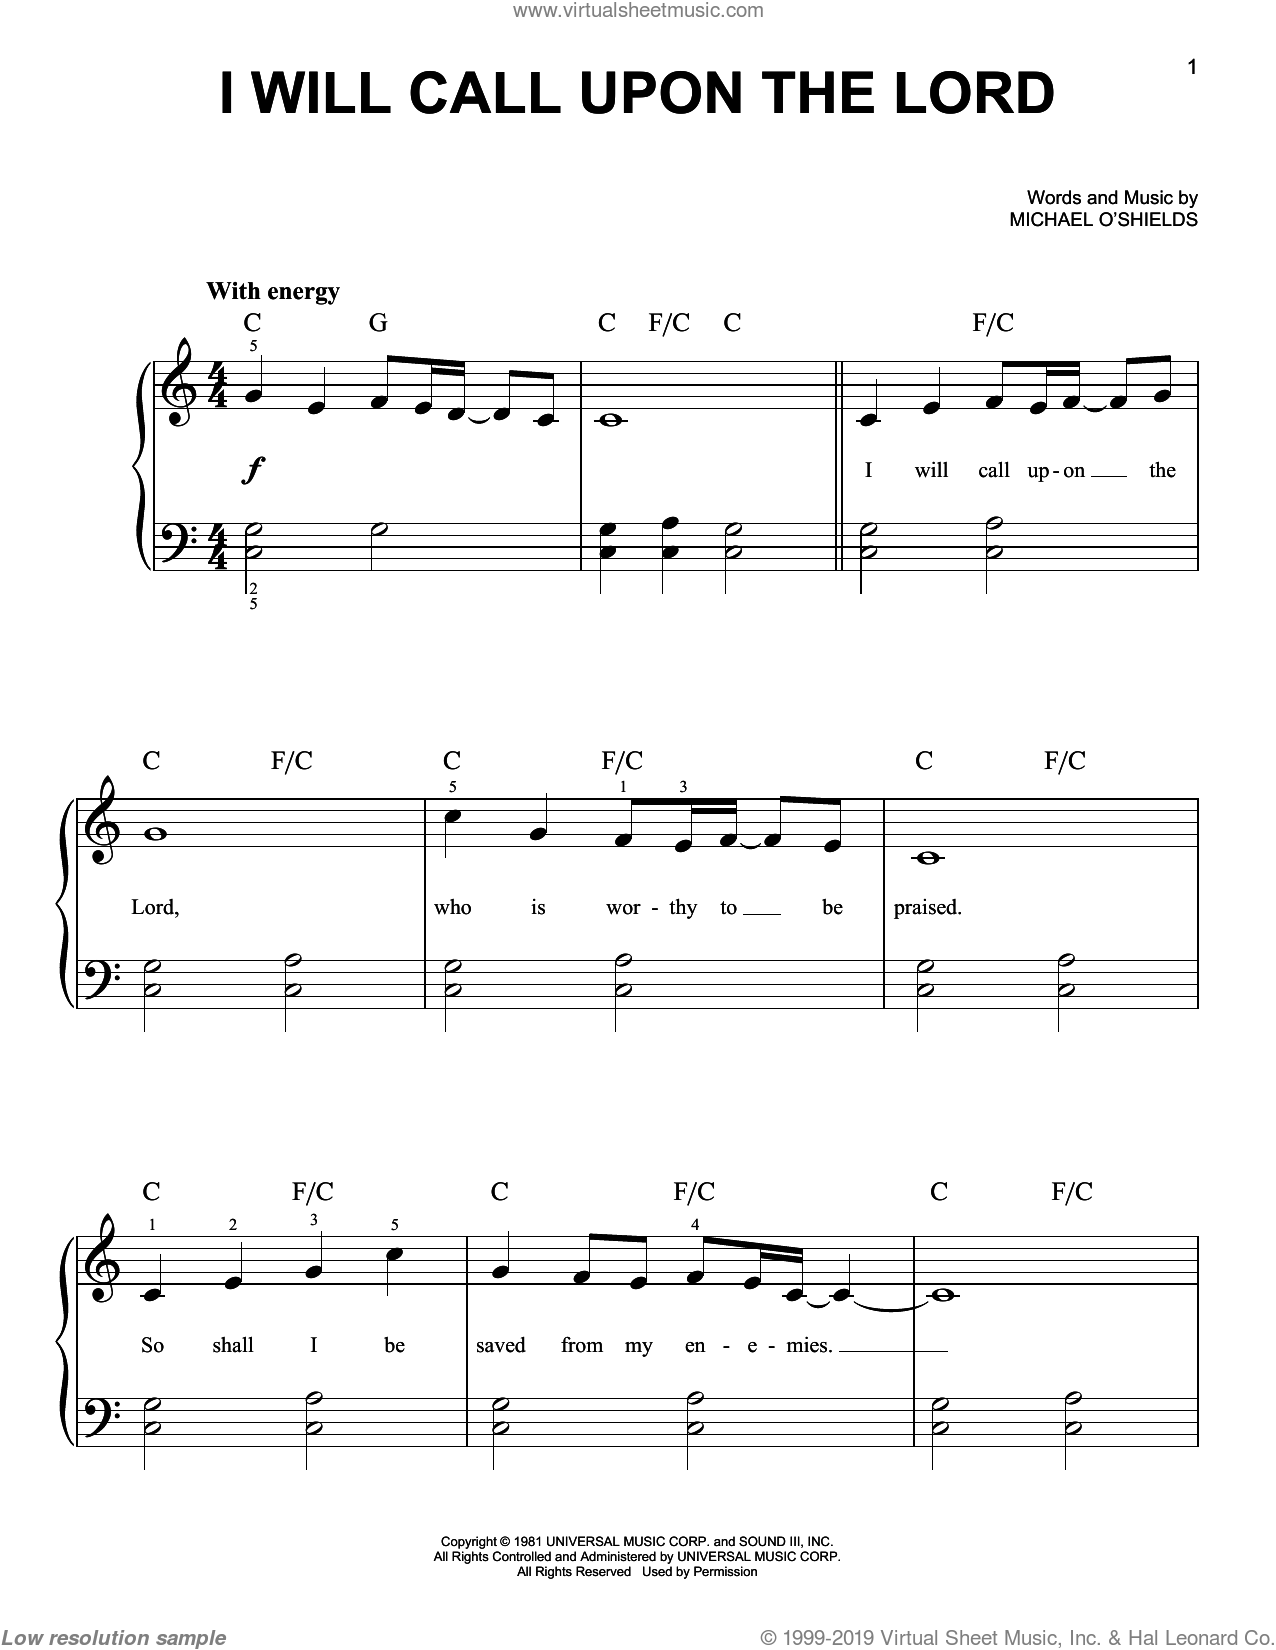 I Will Call Upon The Lord sheet music for piano solo by Michael O'Shields. Score Image Preview.